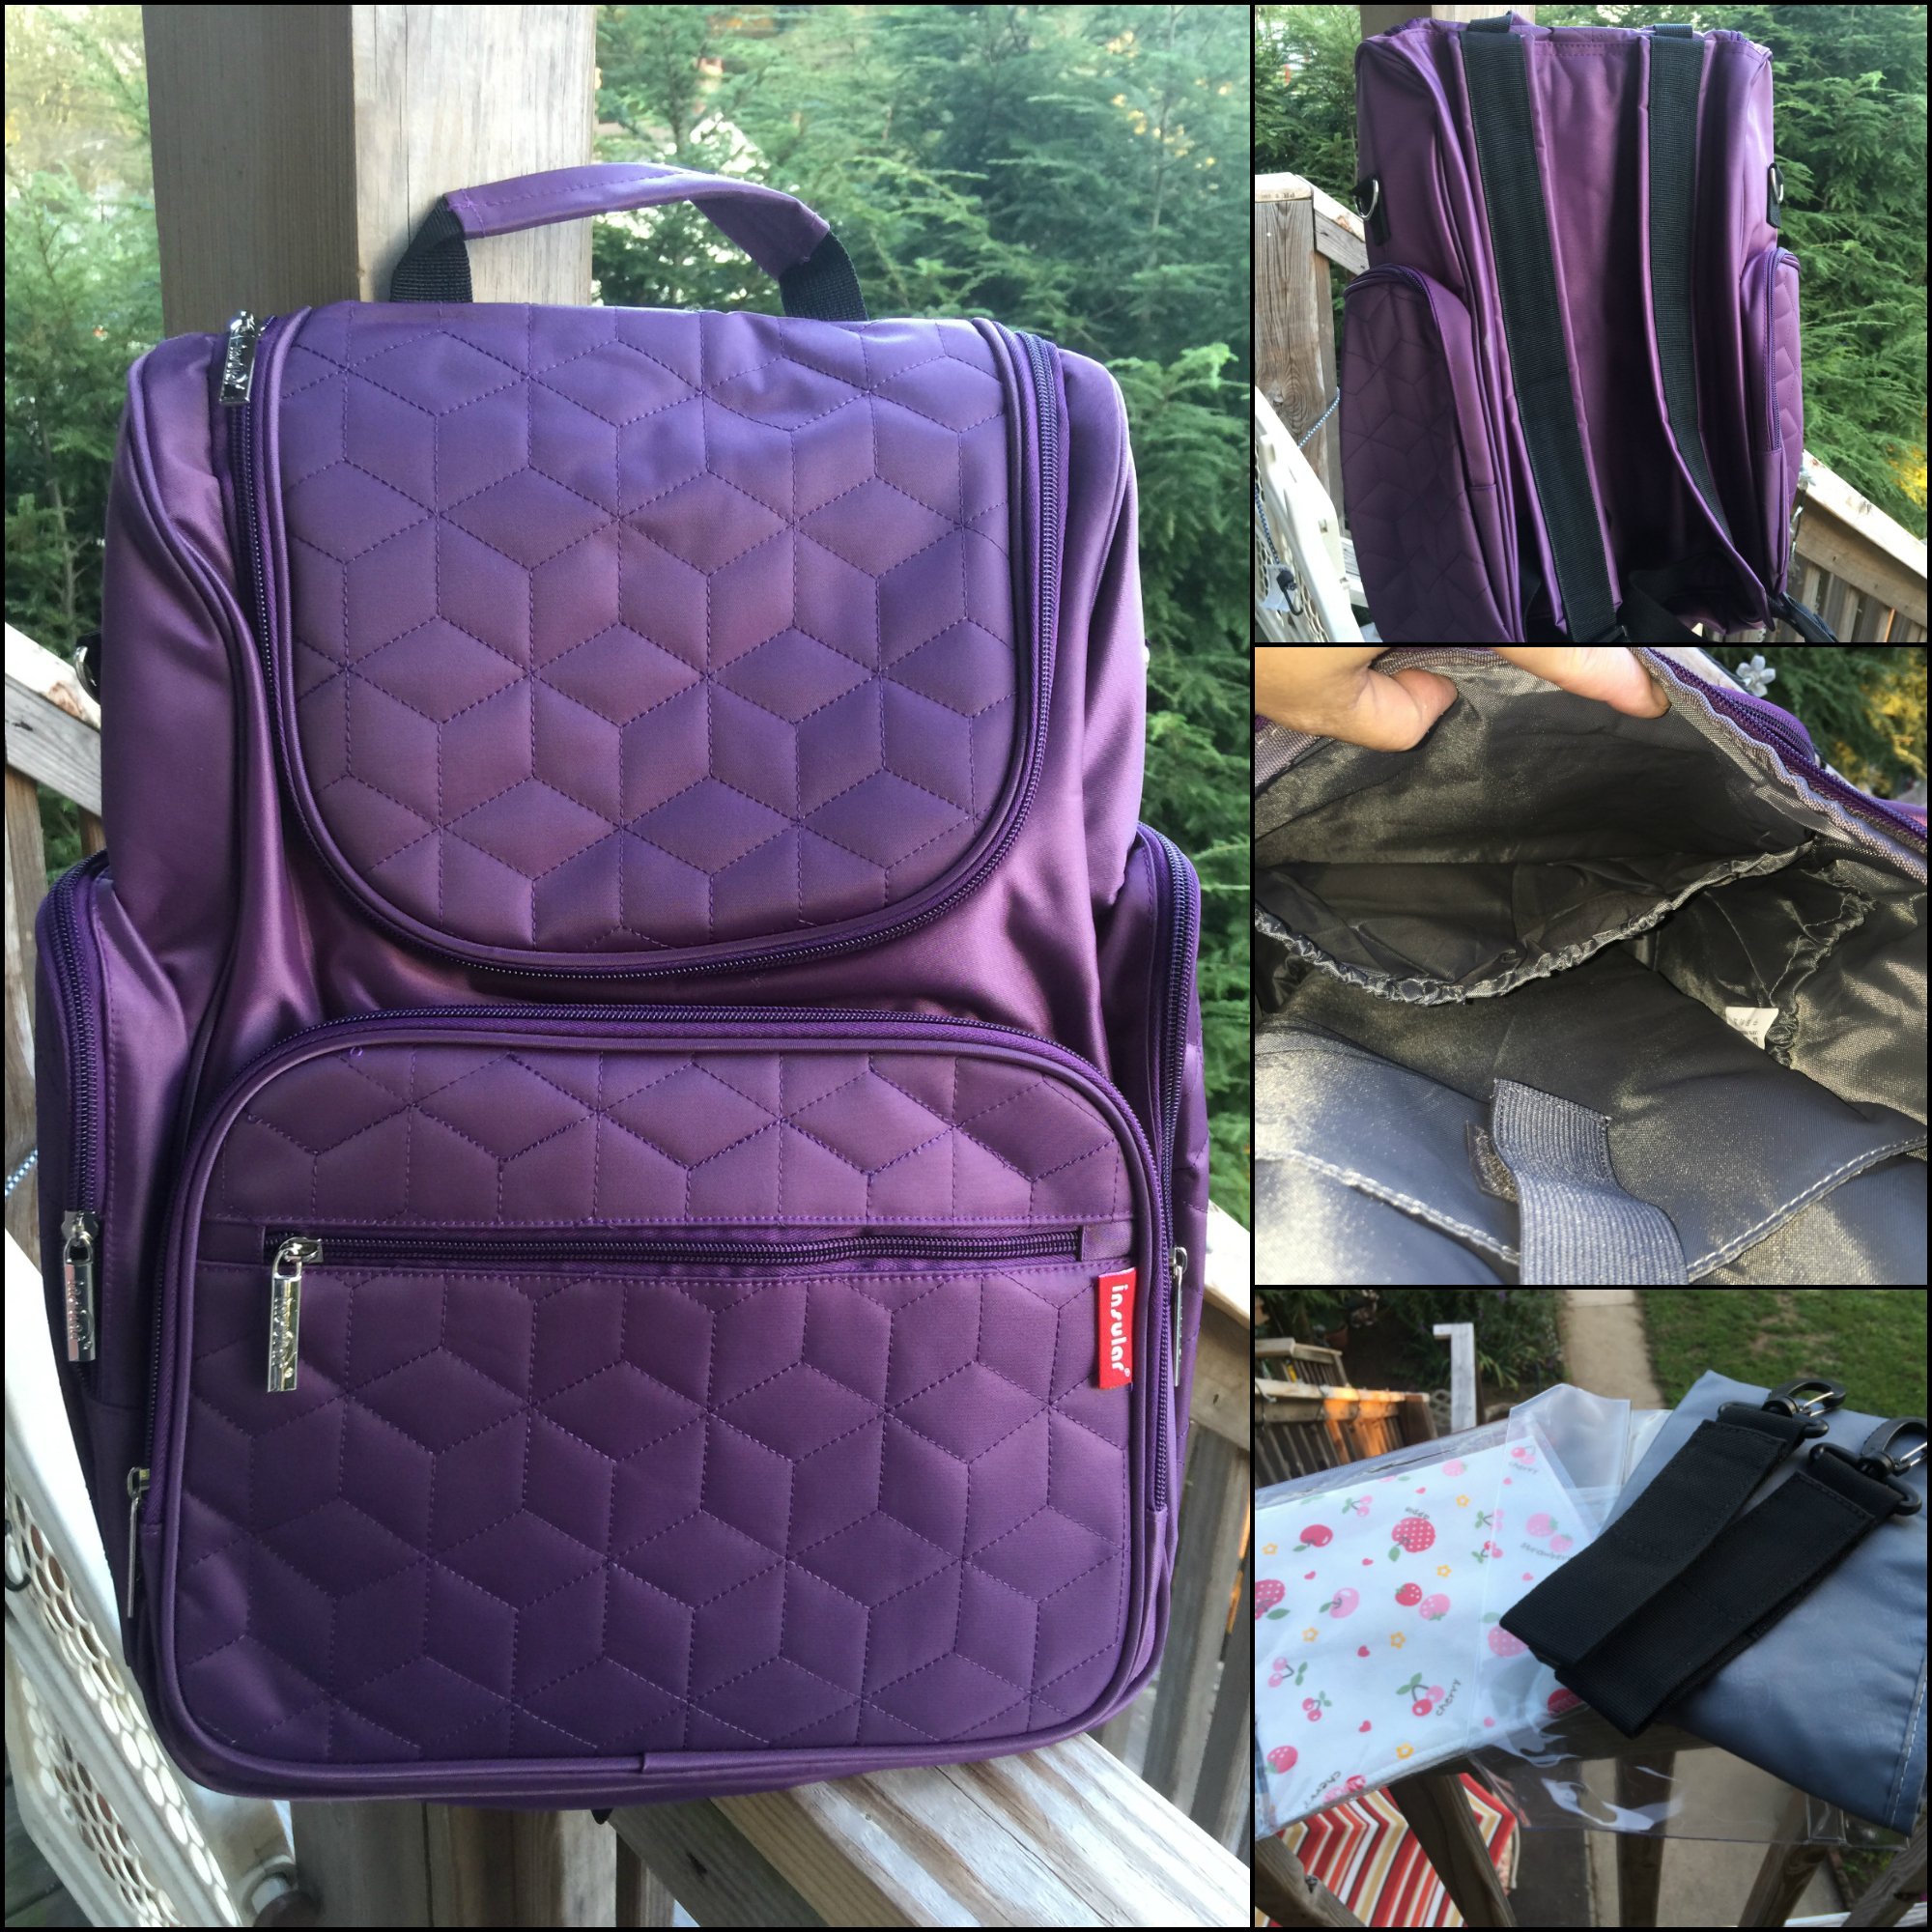 Isn T This The Coolest Bag Ever Okay What Can You Possibly Say About Purple It Is An Awesome Color With Timeless Beauty I Will Larger Than